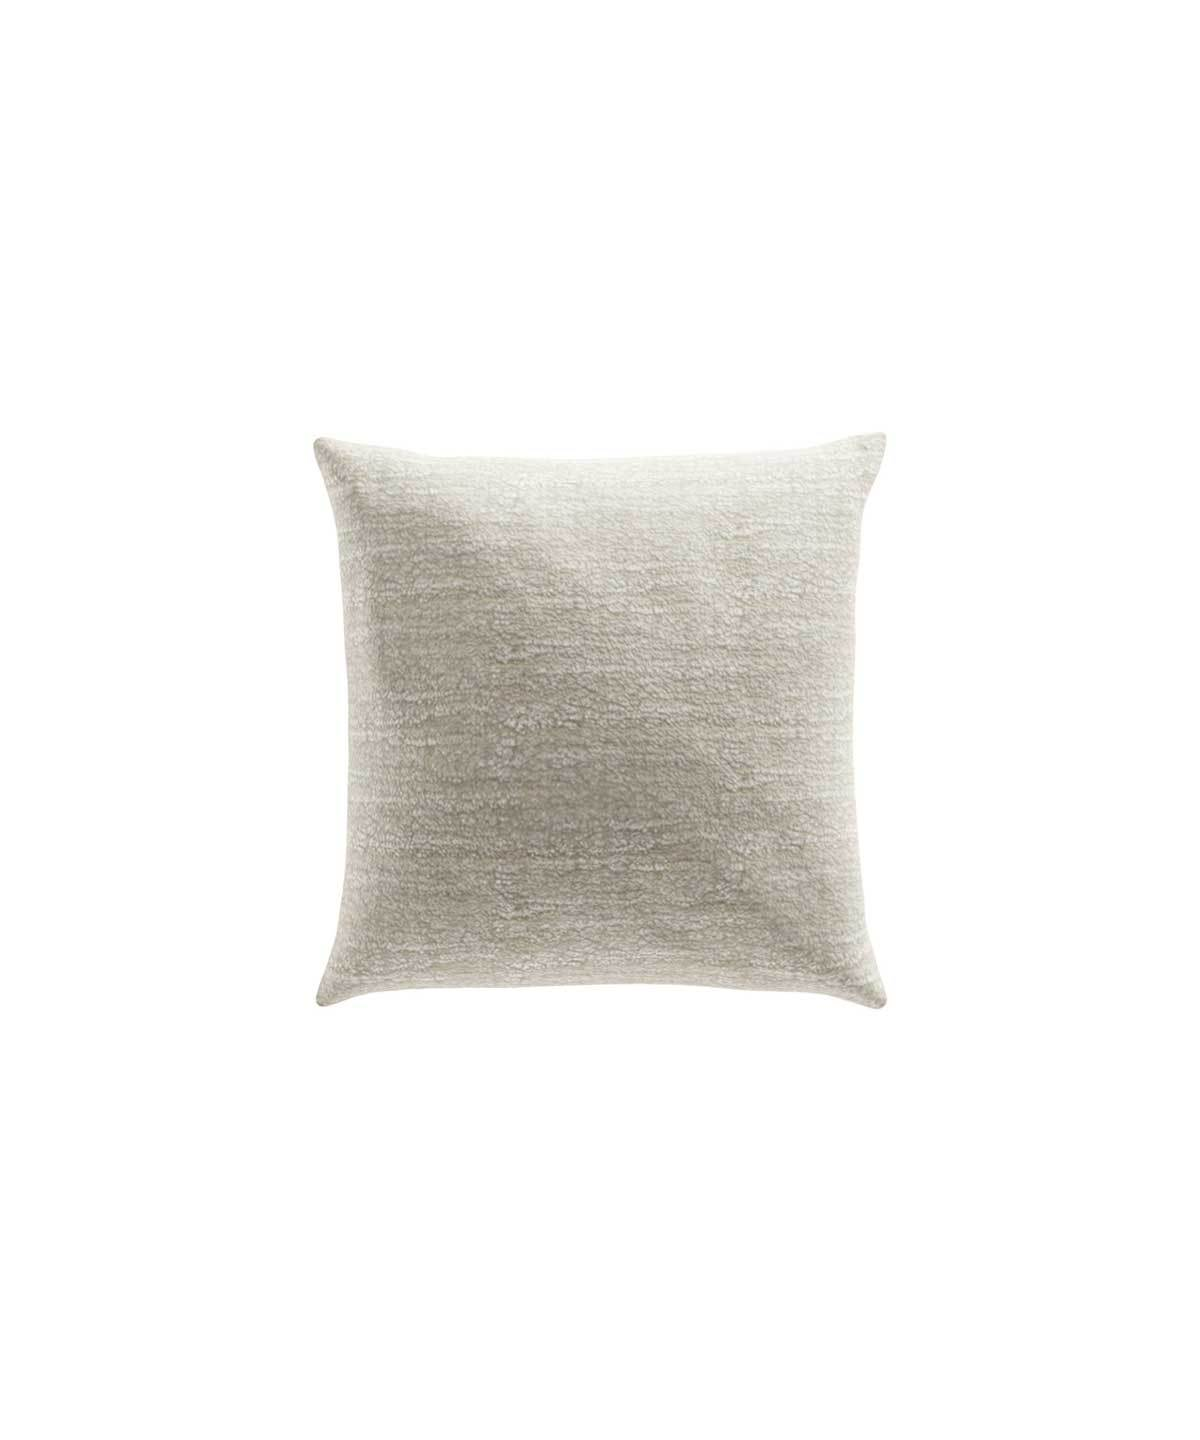 "18"" Throw Pillow in Perla by TRNK 